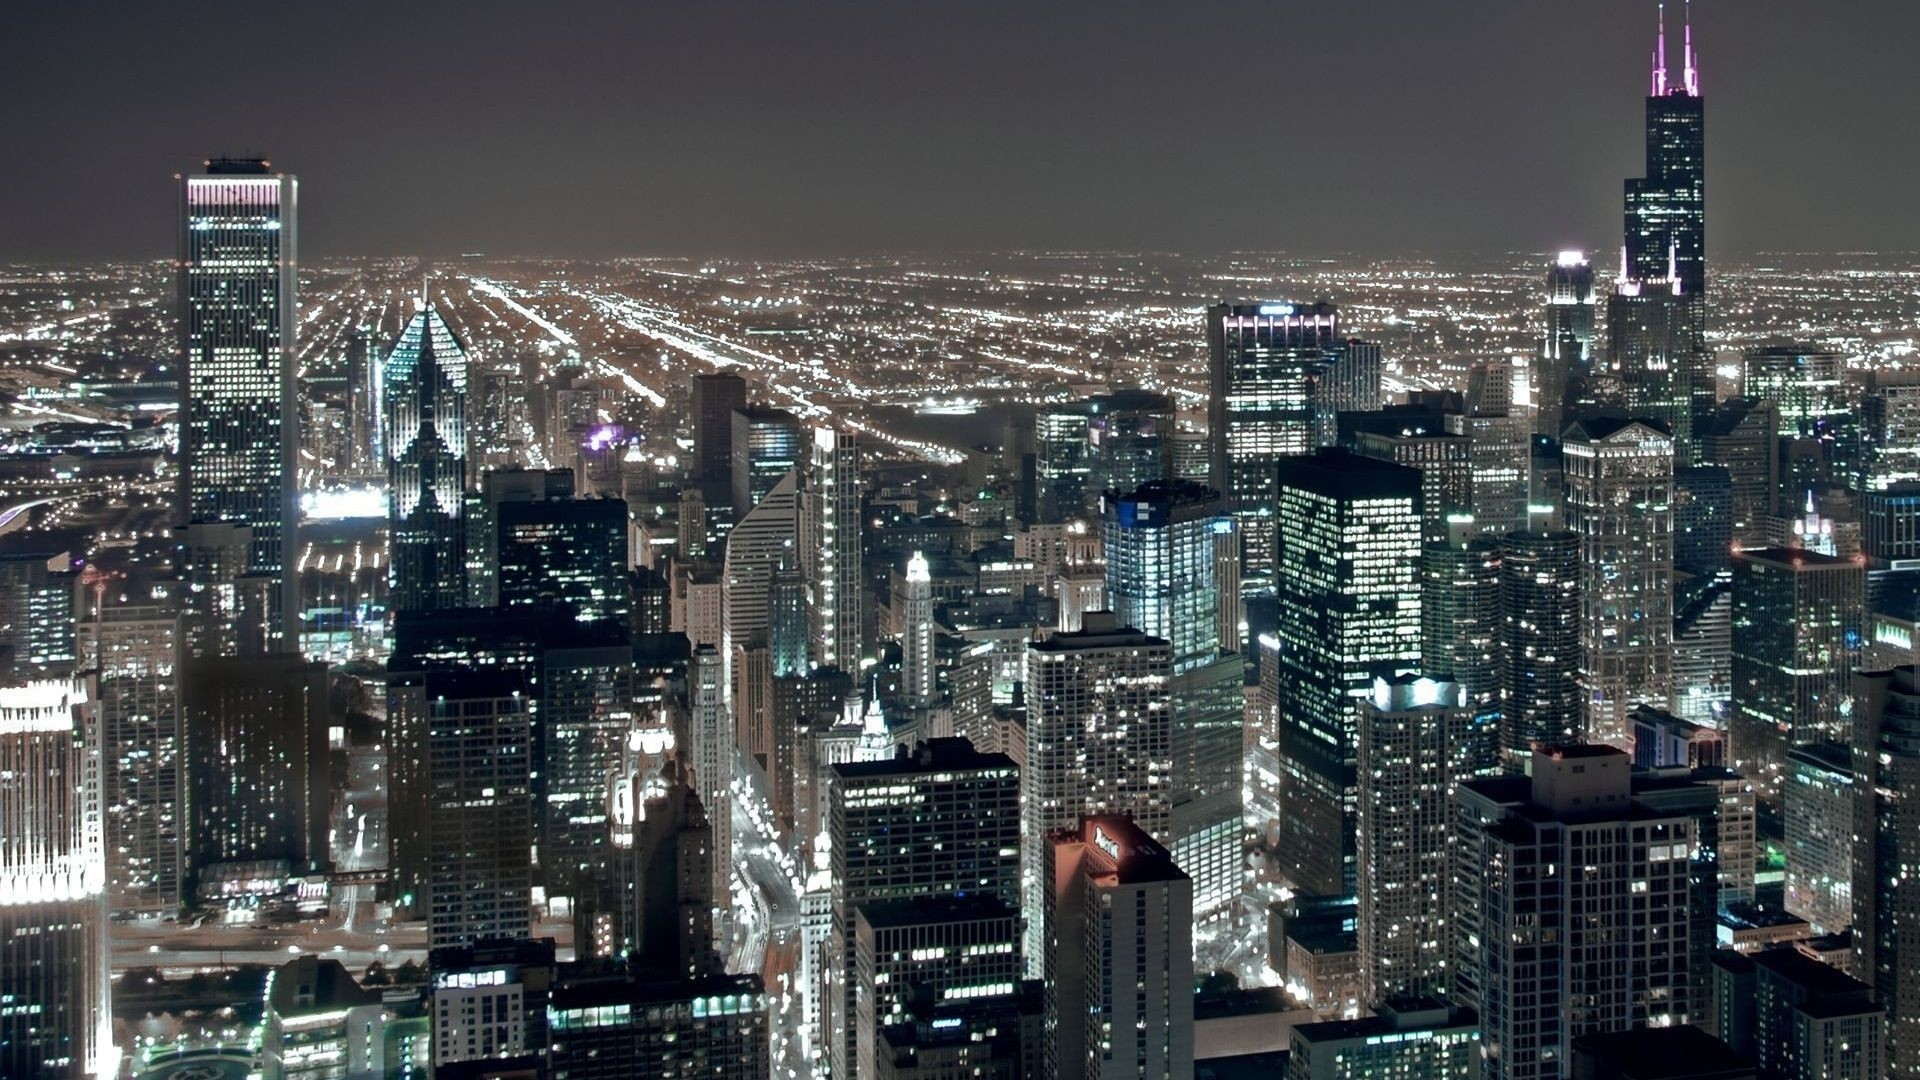 Chicago Aerial View Wallpaper